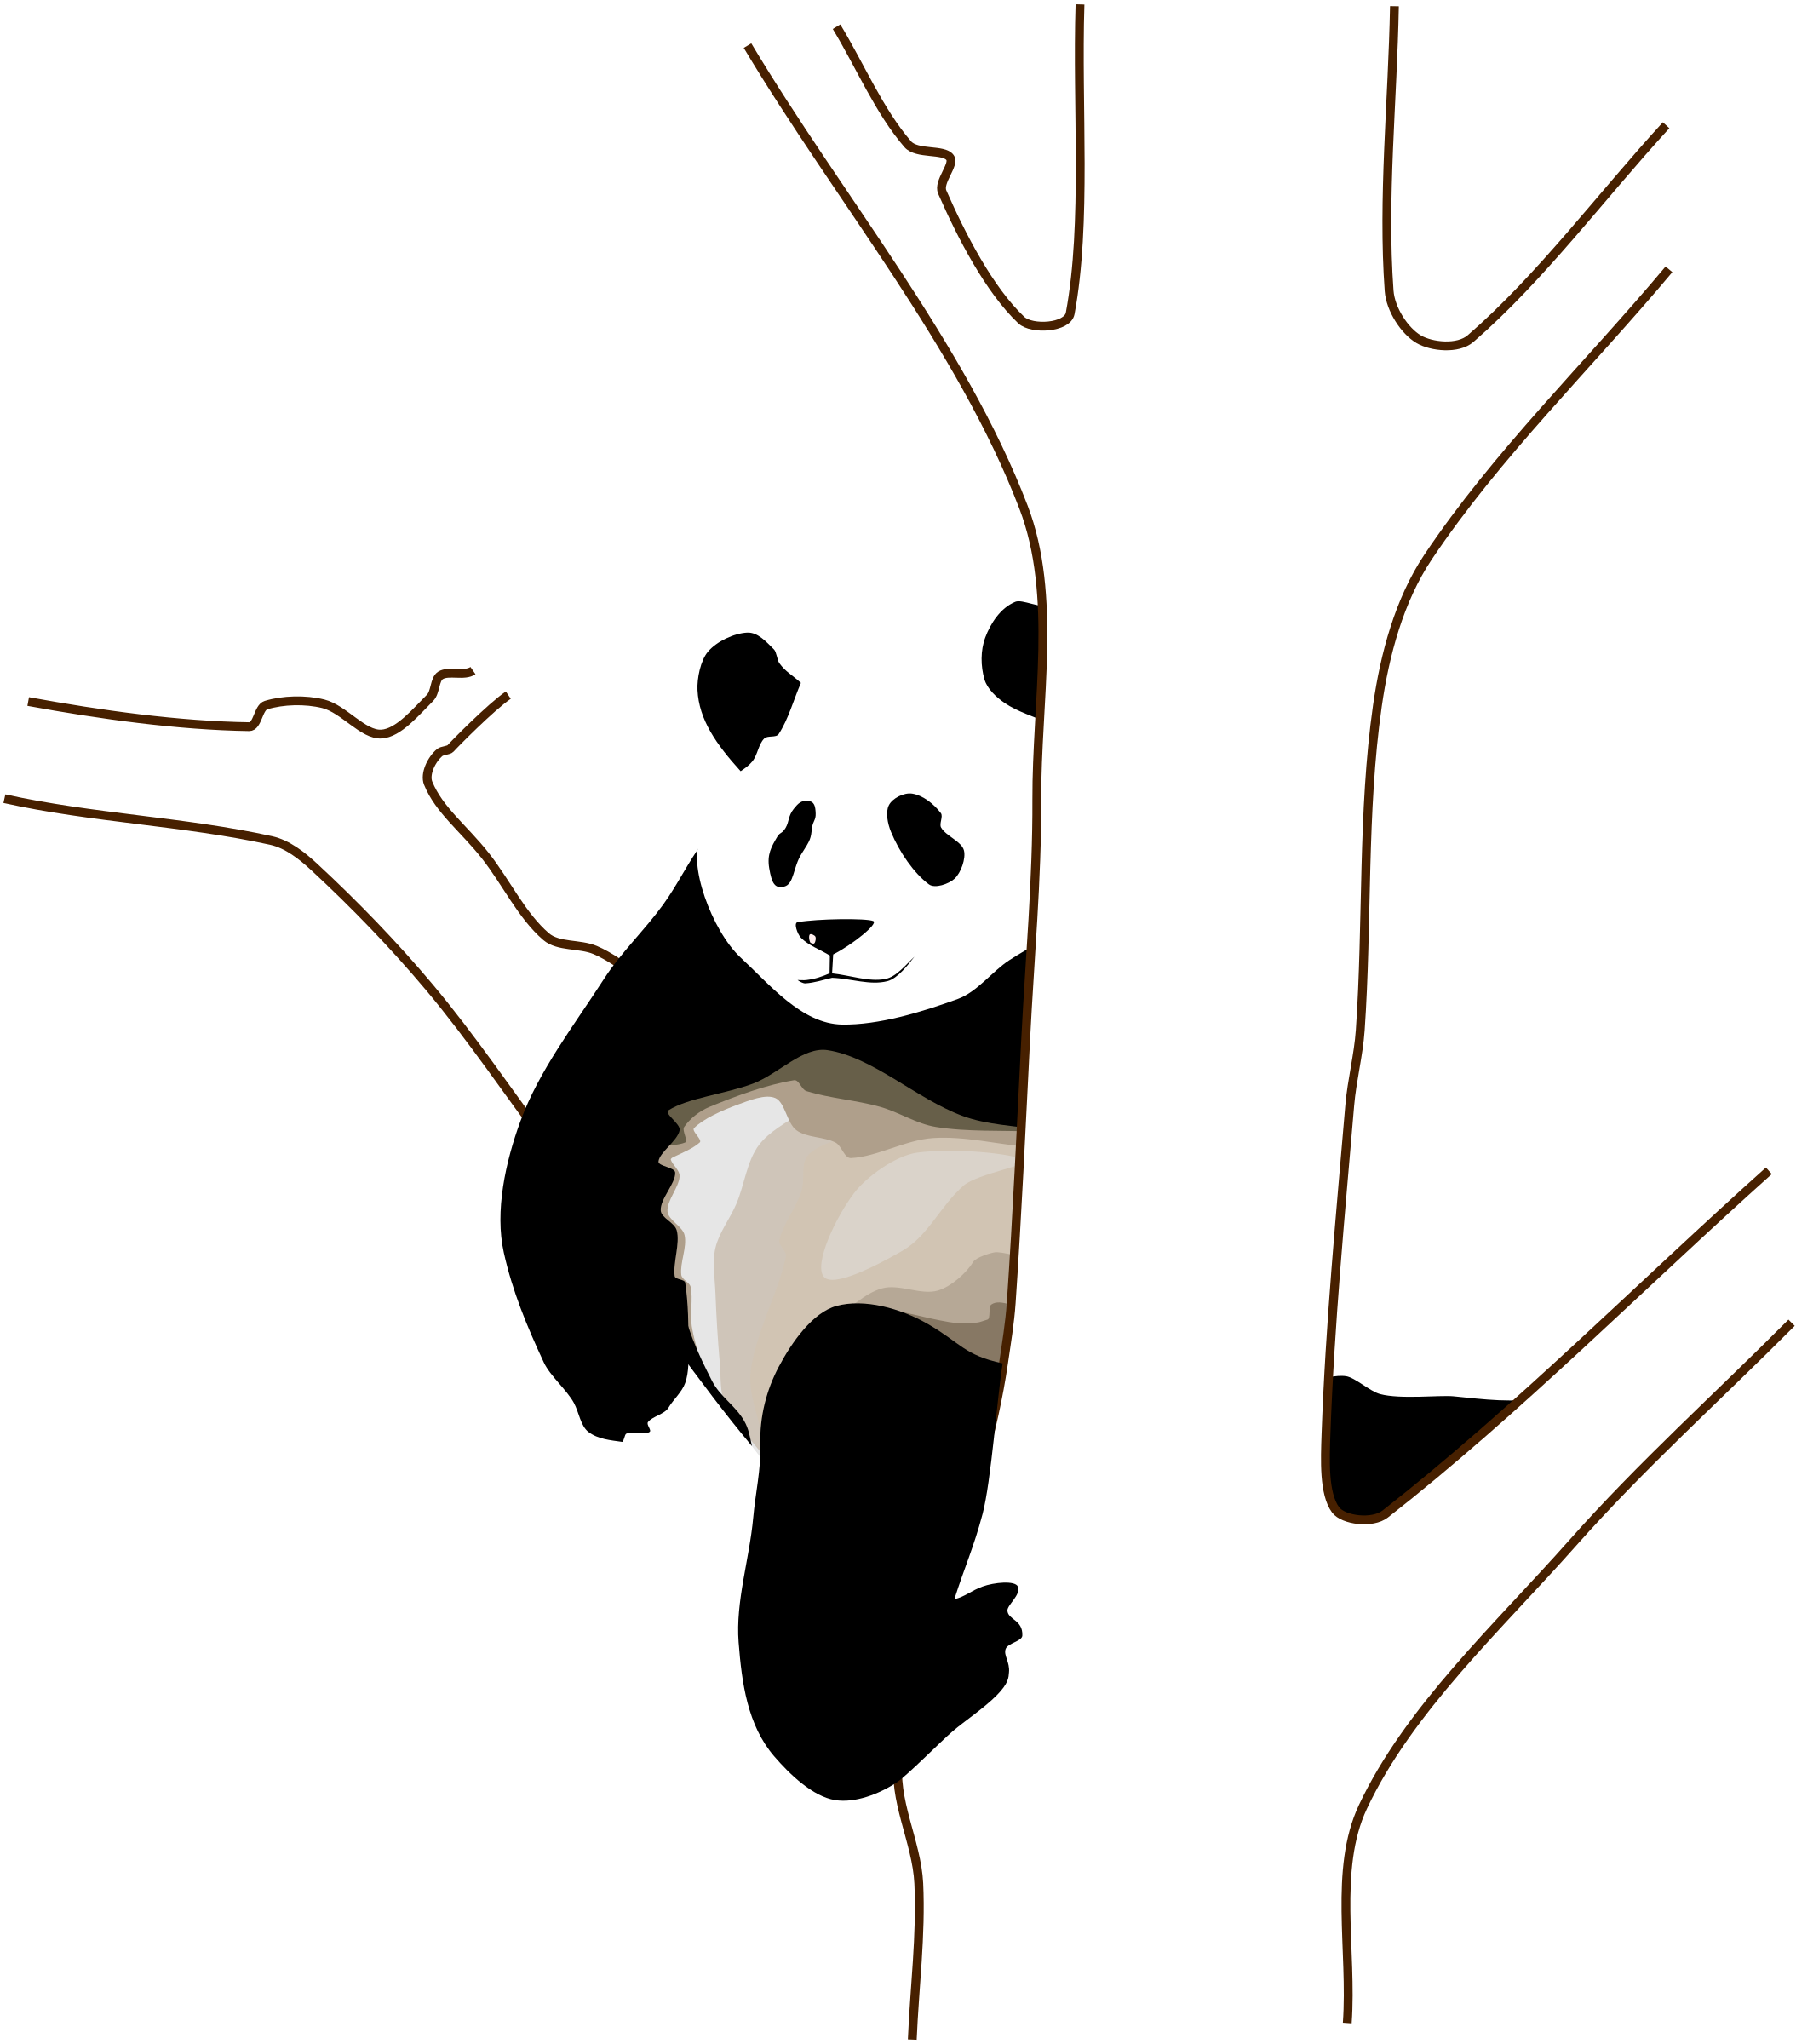 giant-panda-2 by baronchon